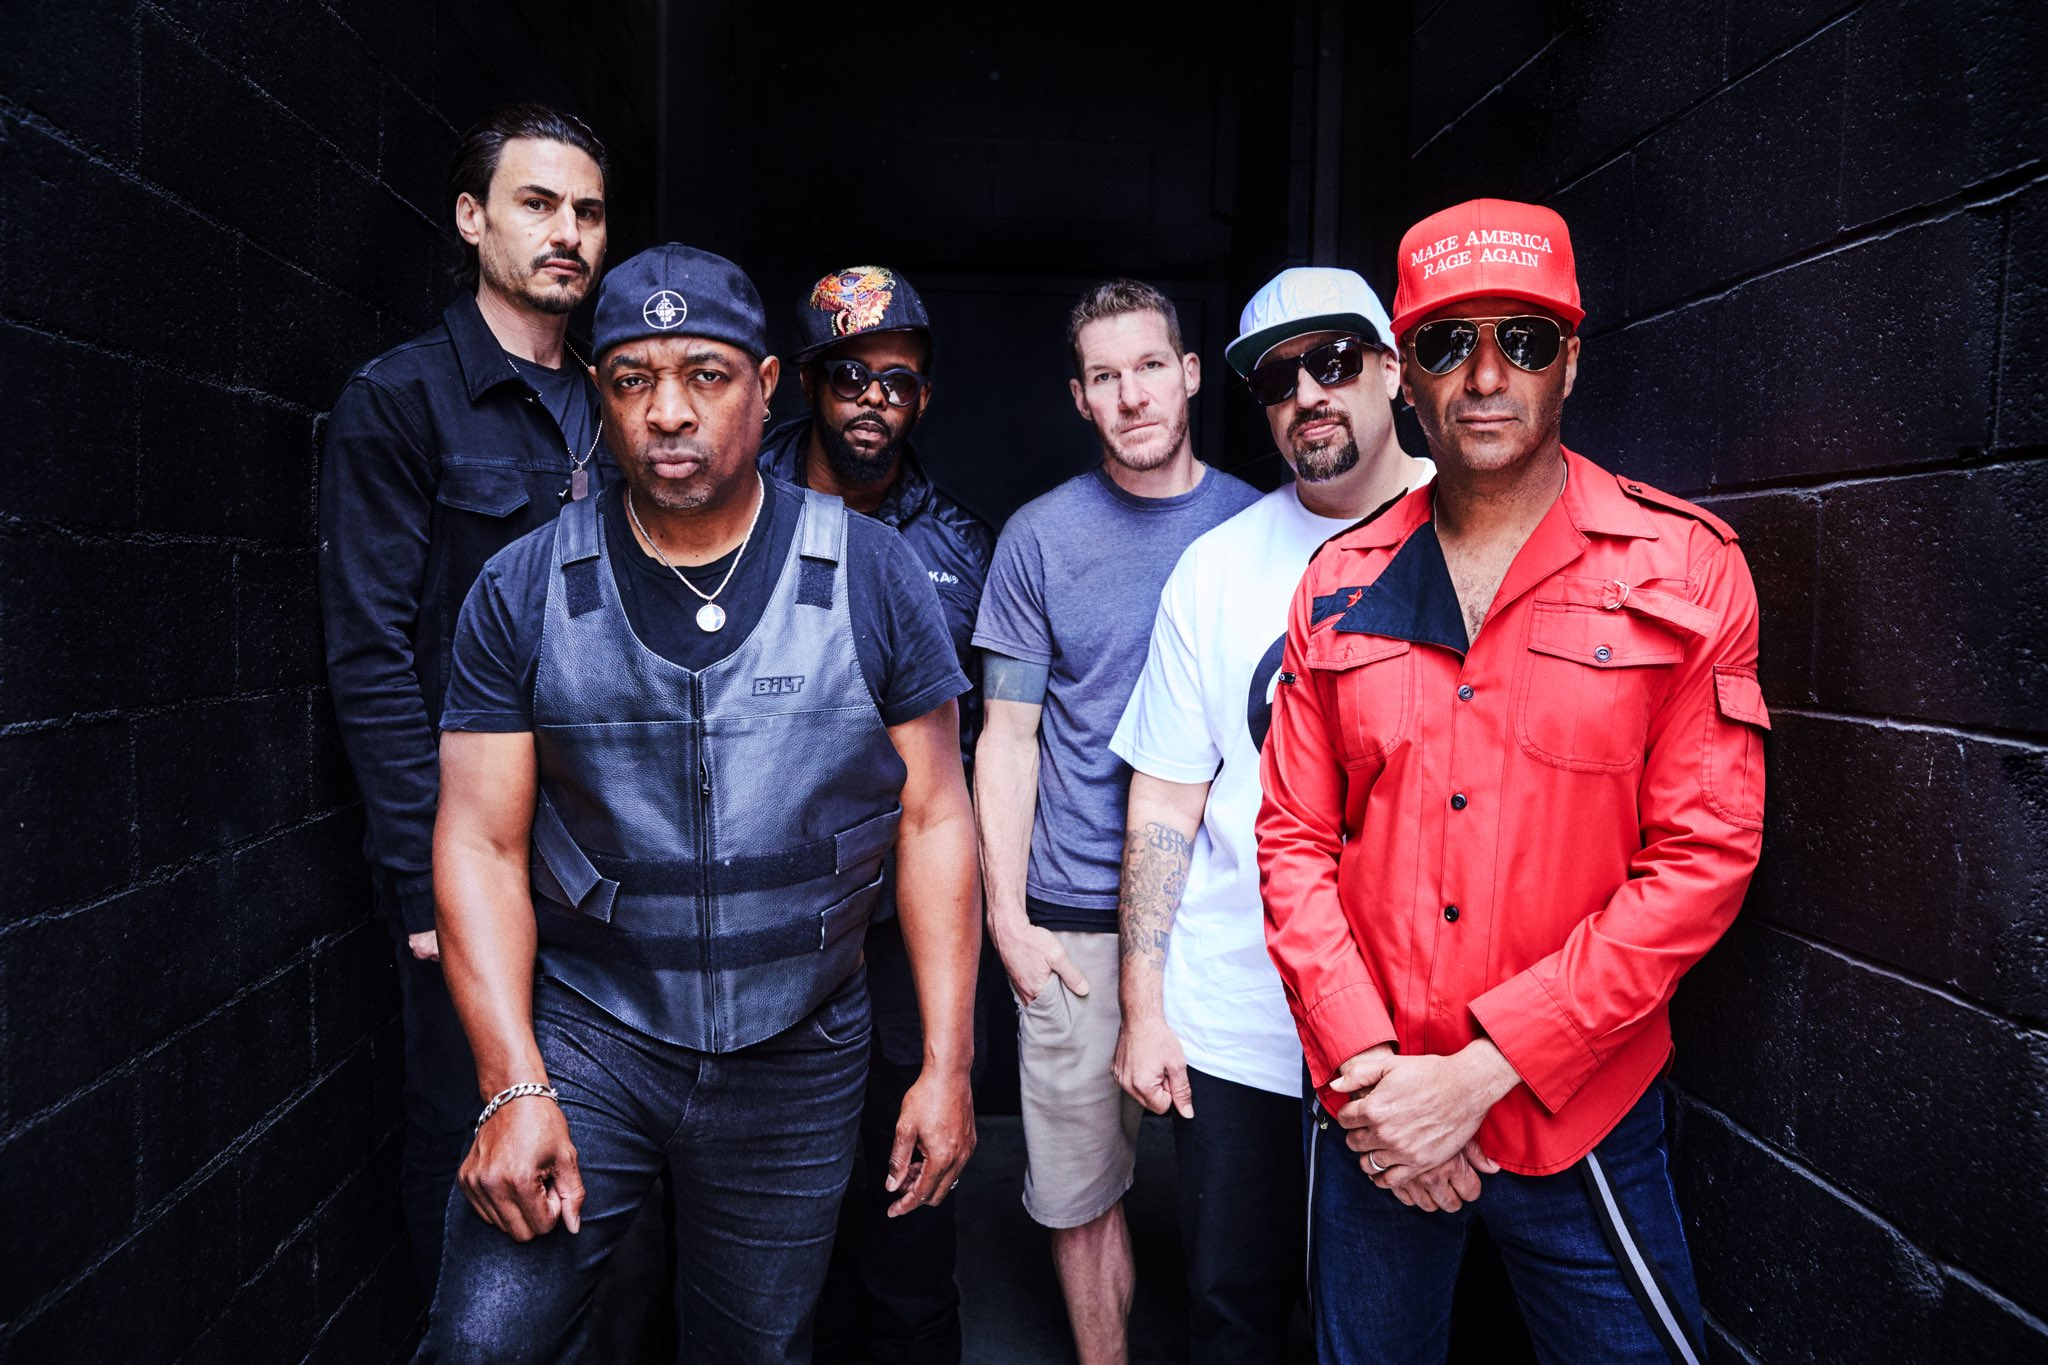 Prophets of Rage are here and stand to take the power back